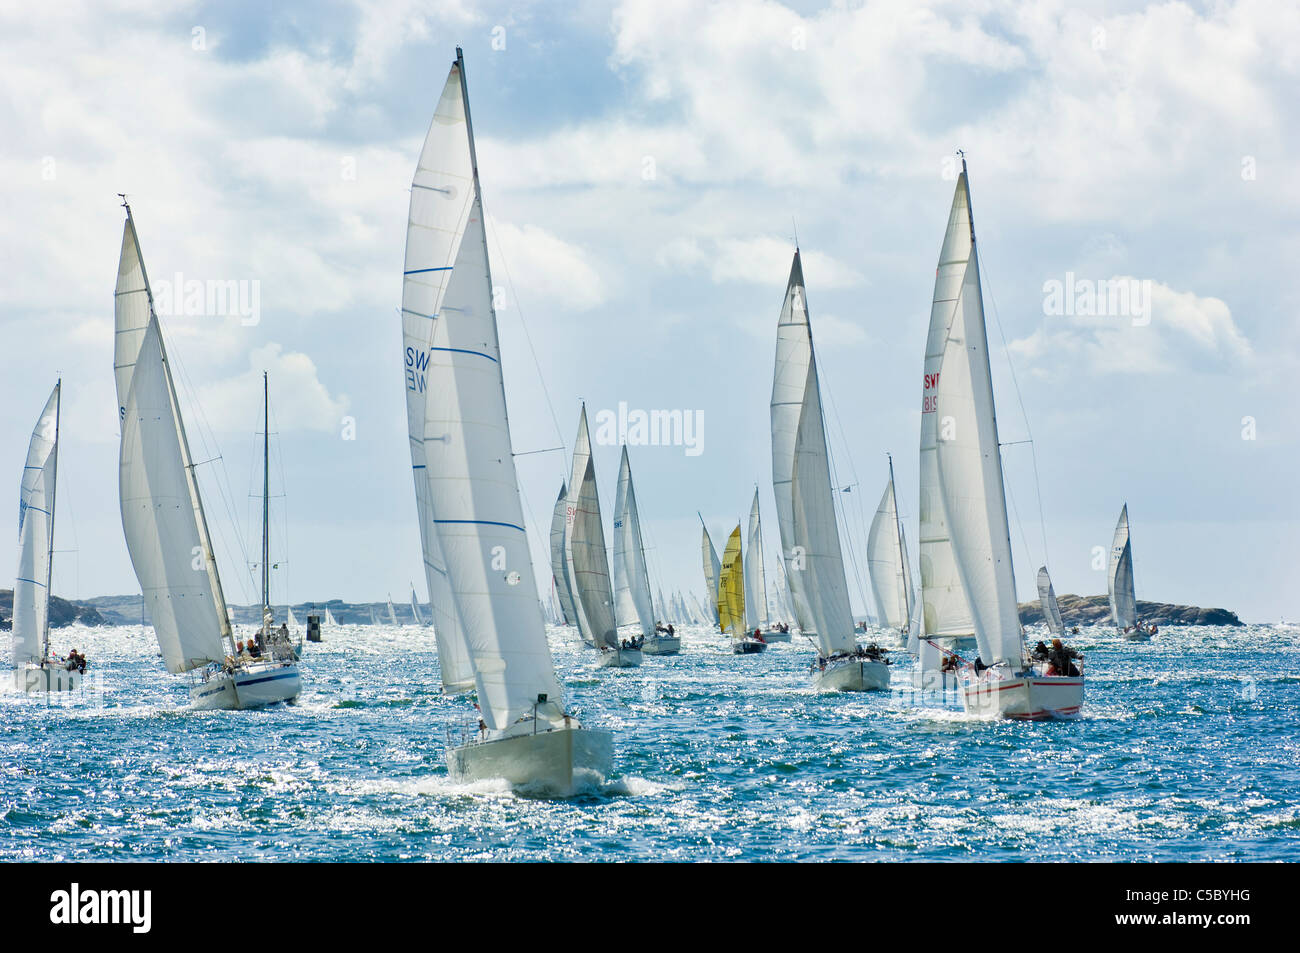 Many sailboats during the oceanic race against cloudy sky - Stock Image